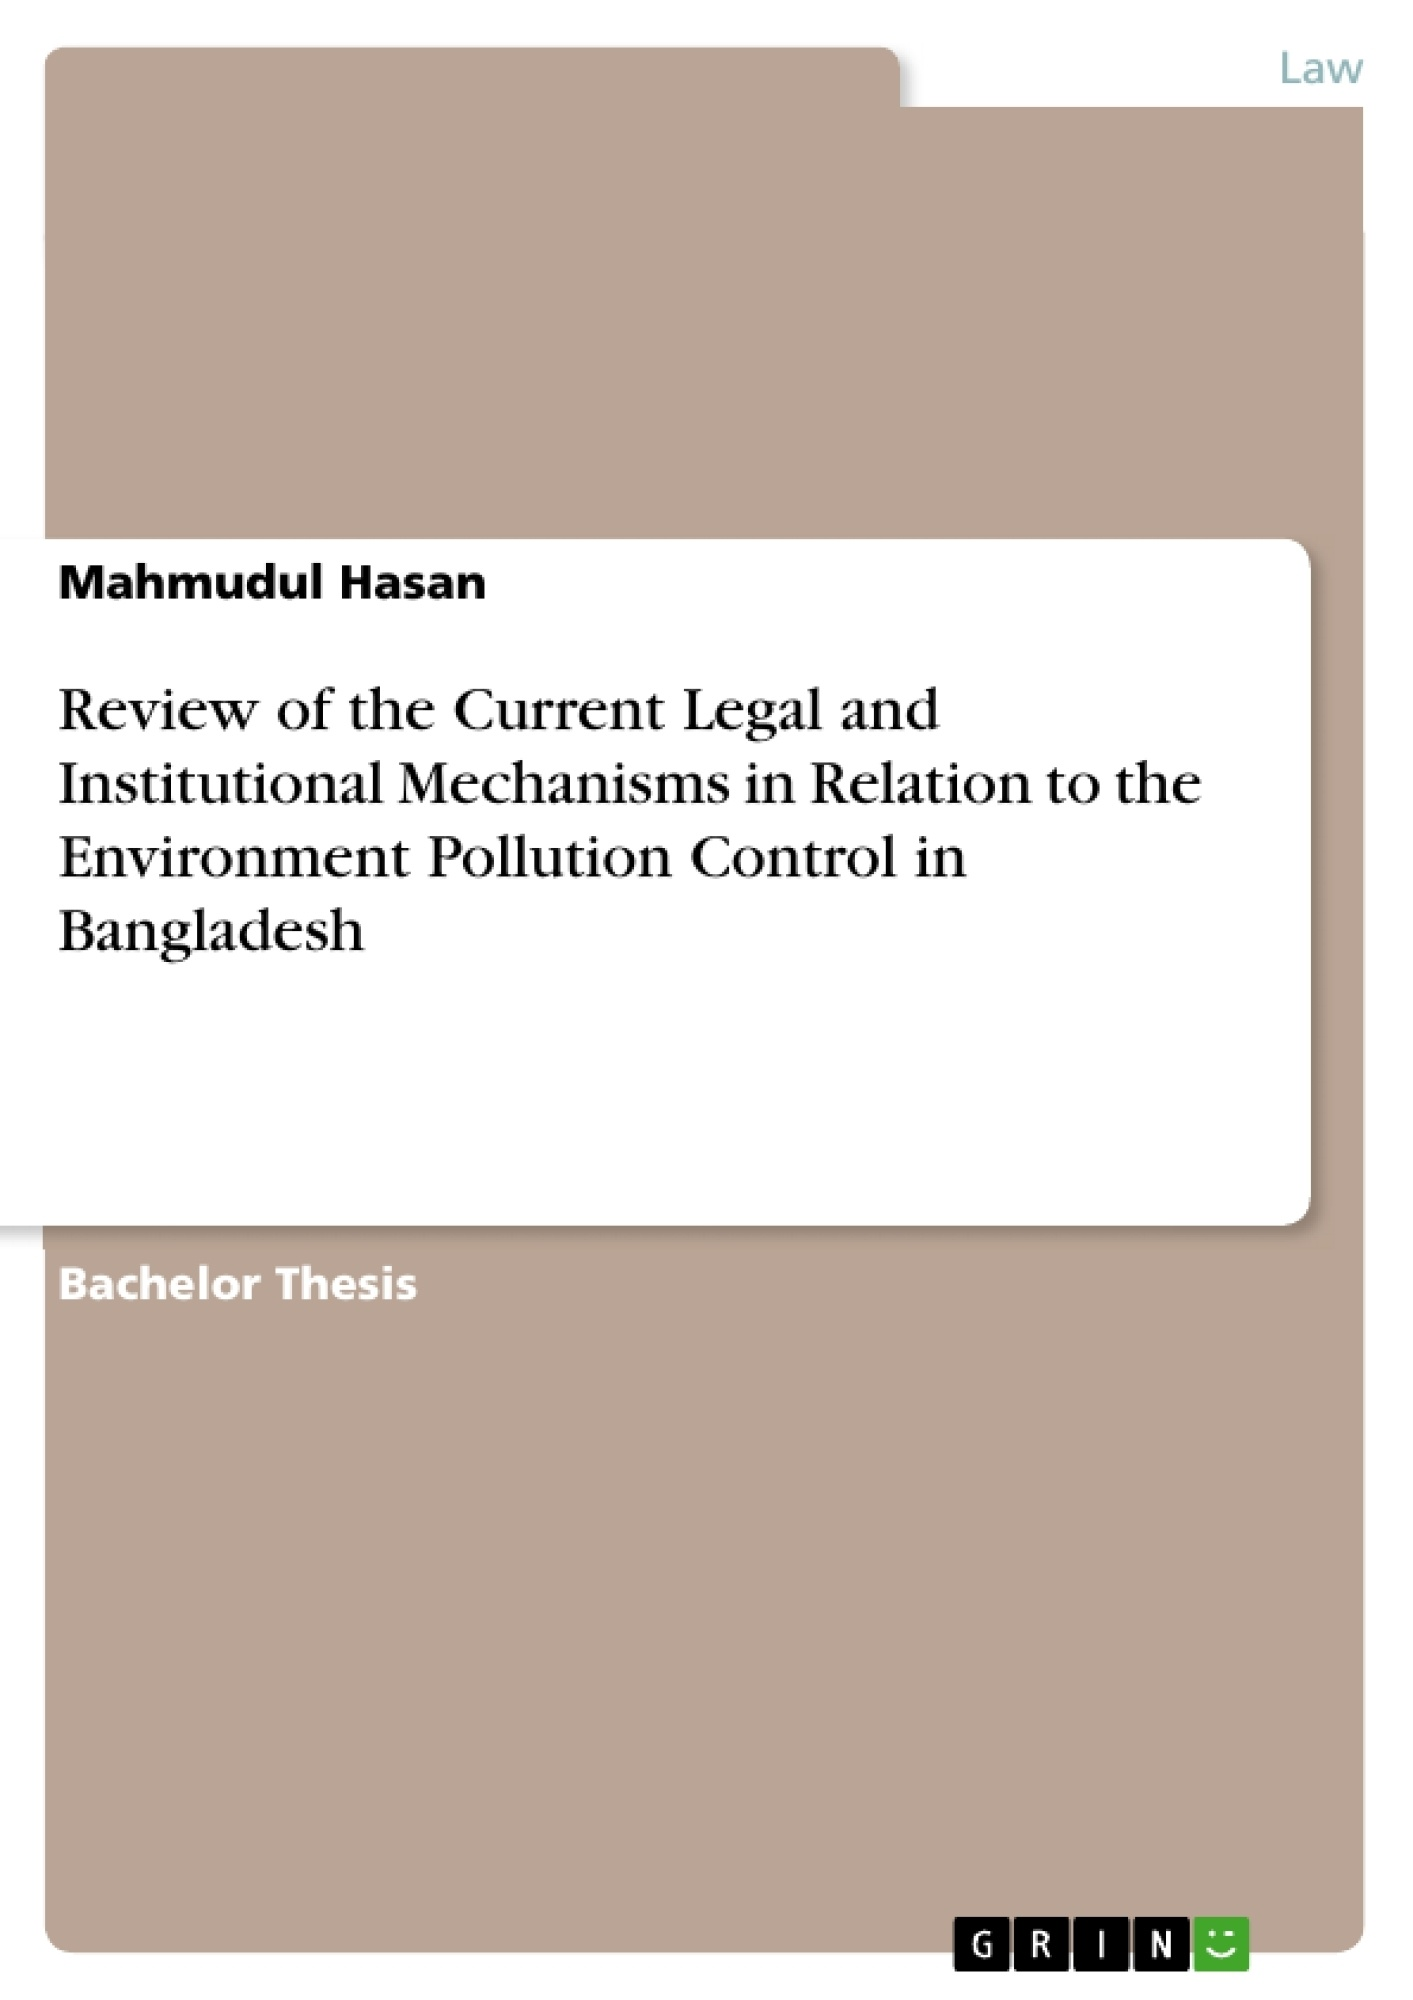 Title: Review of the Current Legal and Institutional Mechanisms in Relation to the Environment Pollution Control in Bangladesh